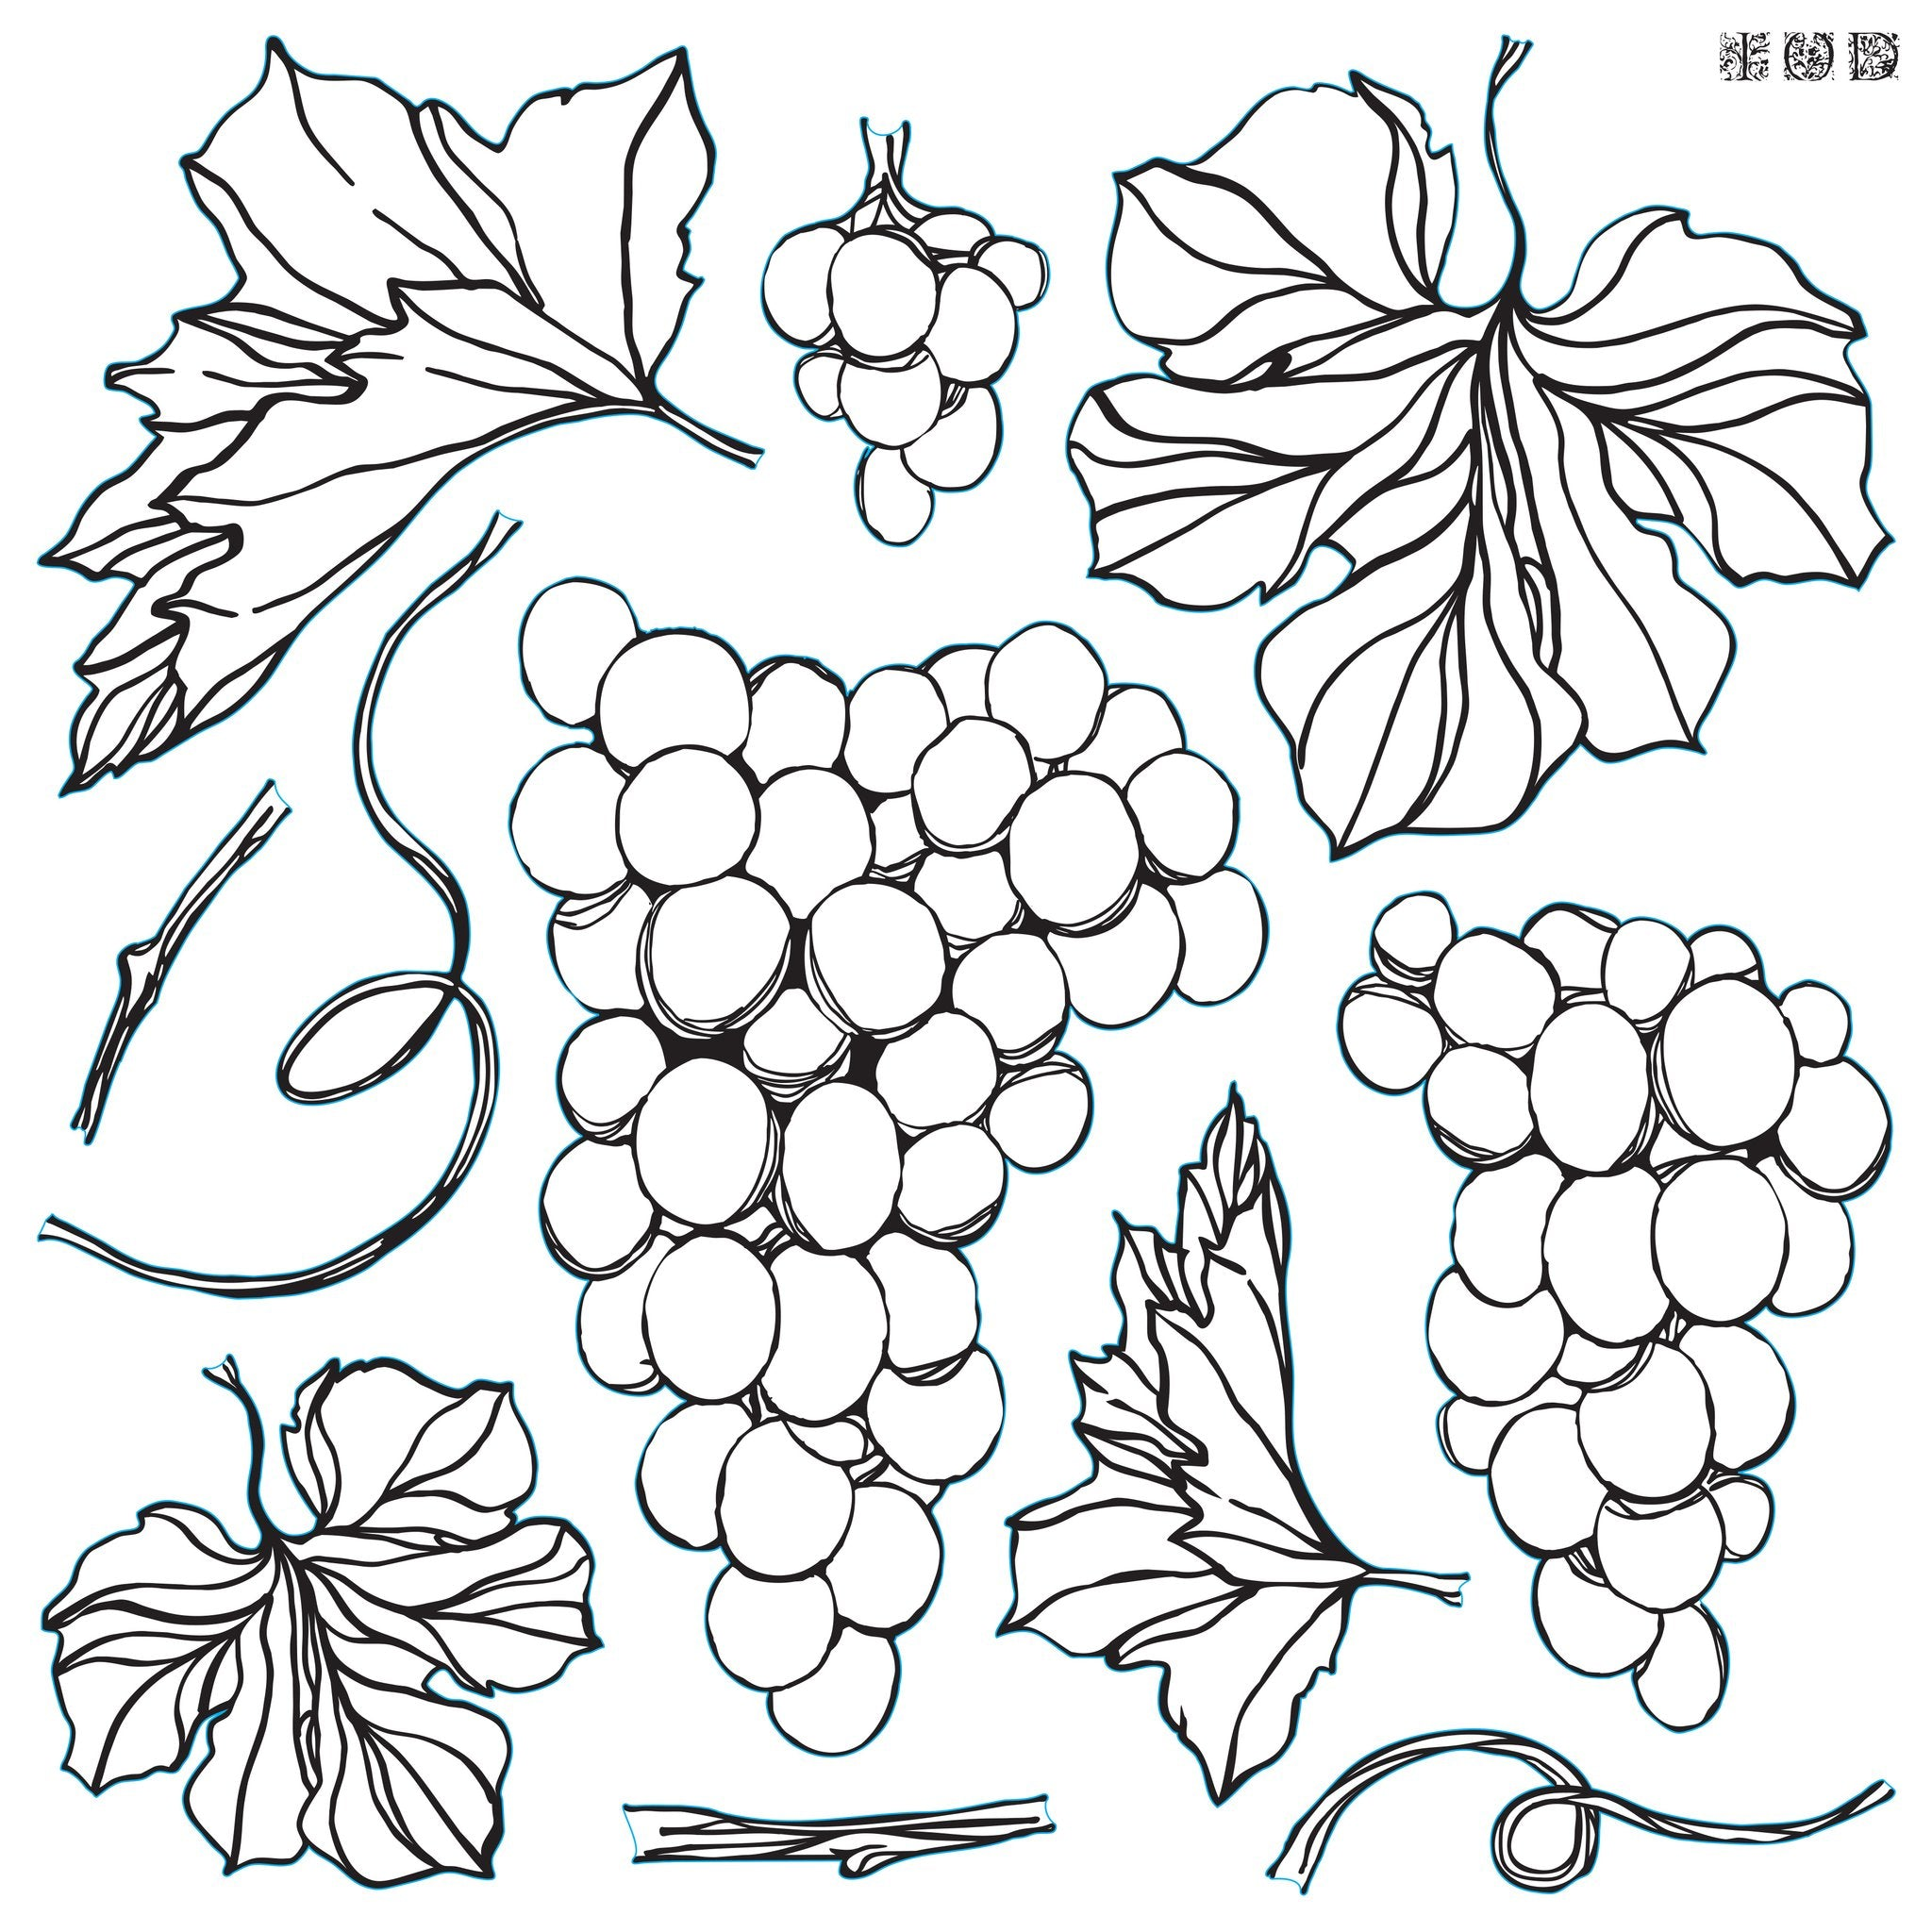 Grapes- IOD decor stamp - PREORDER